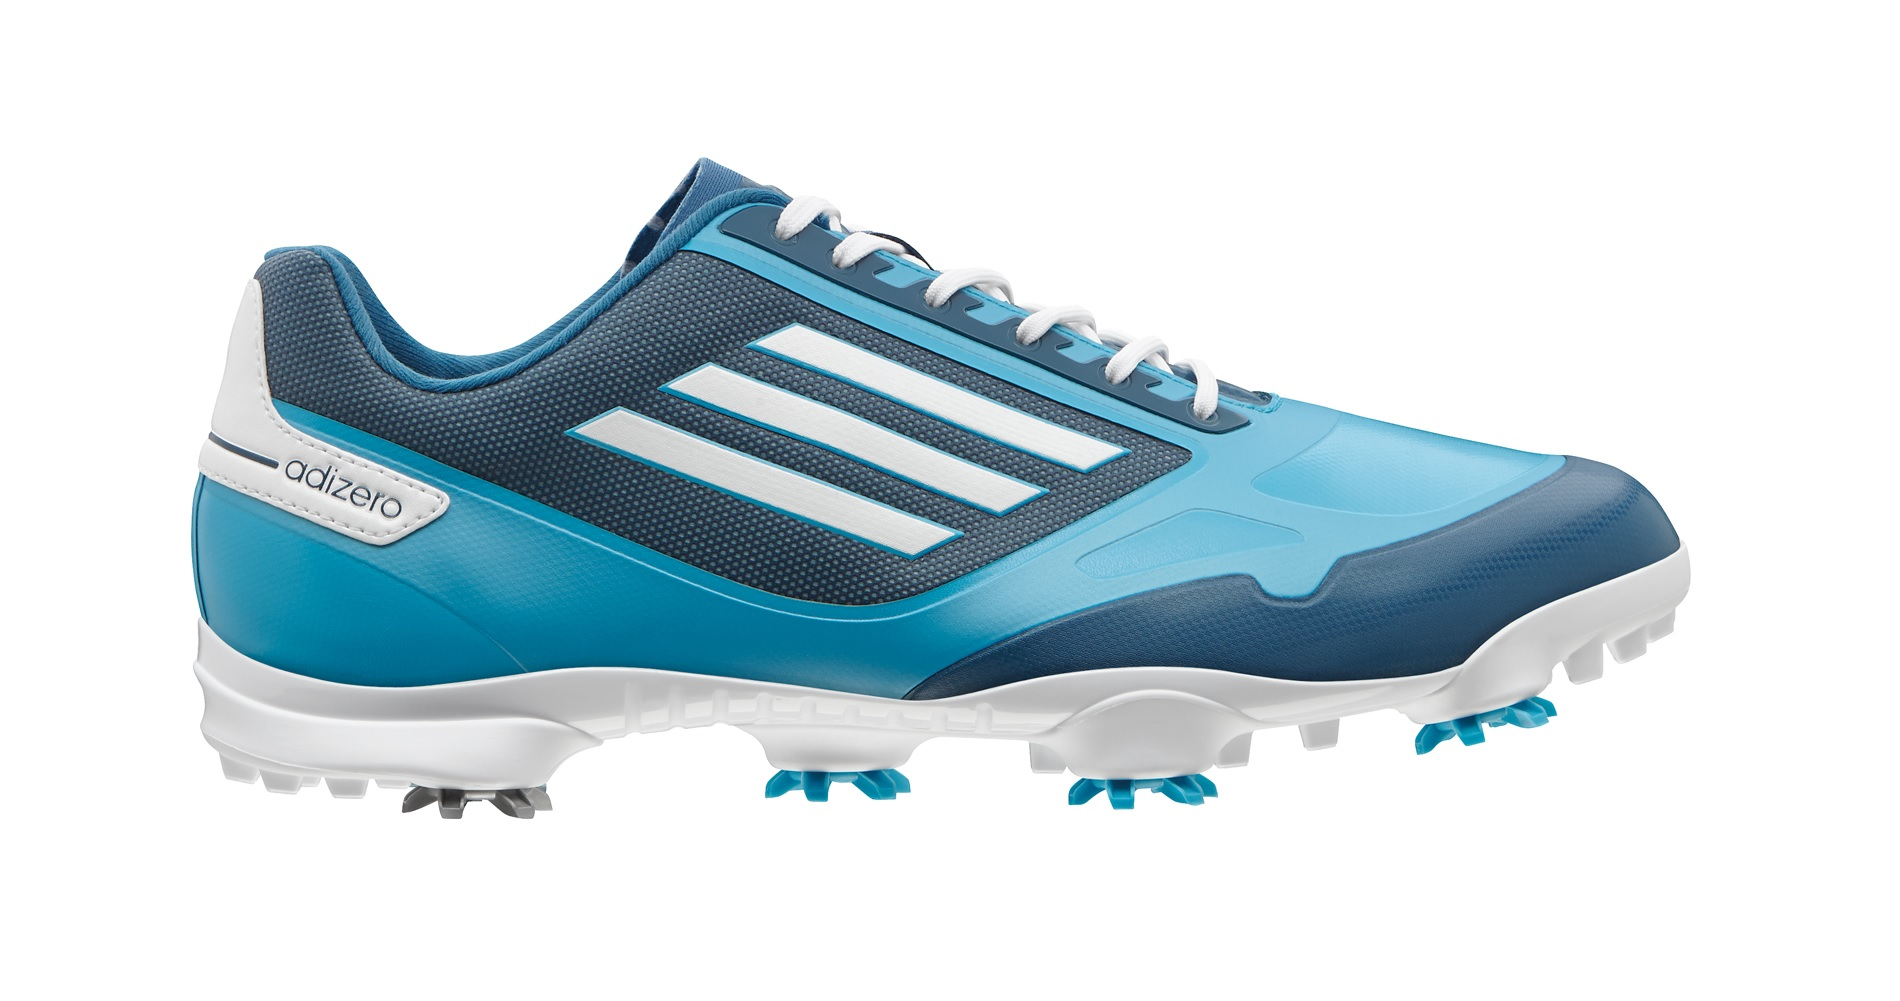 Top 10 Spikeless Golf Shoes Reviews — Best Models for Your Easy Choice in 2020